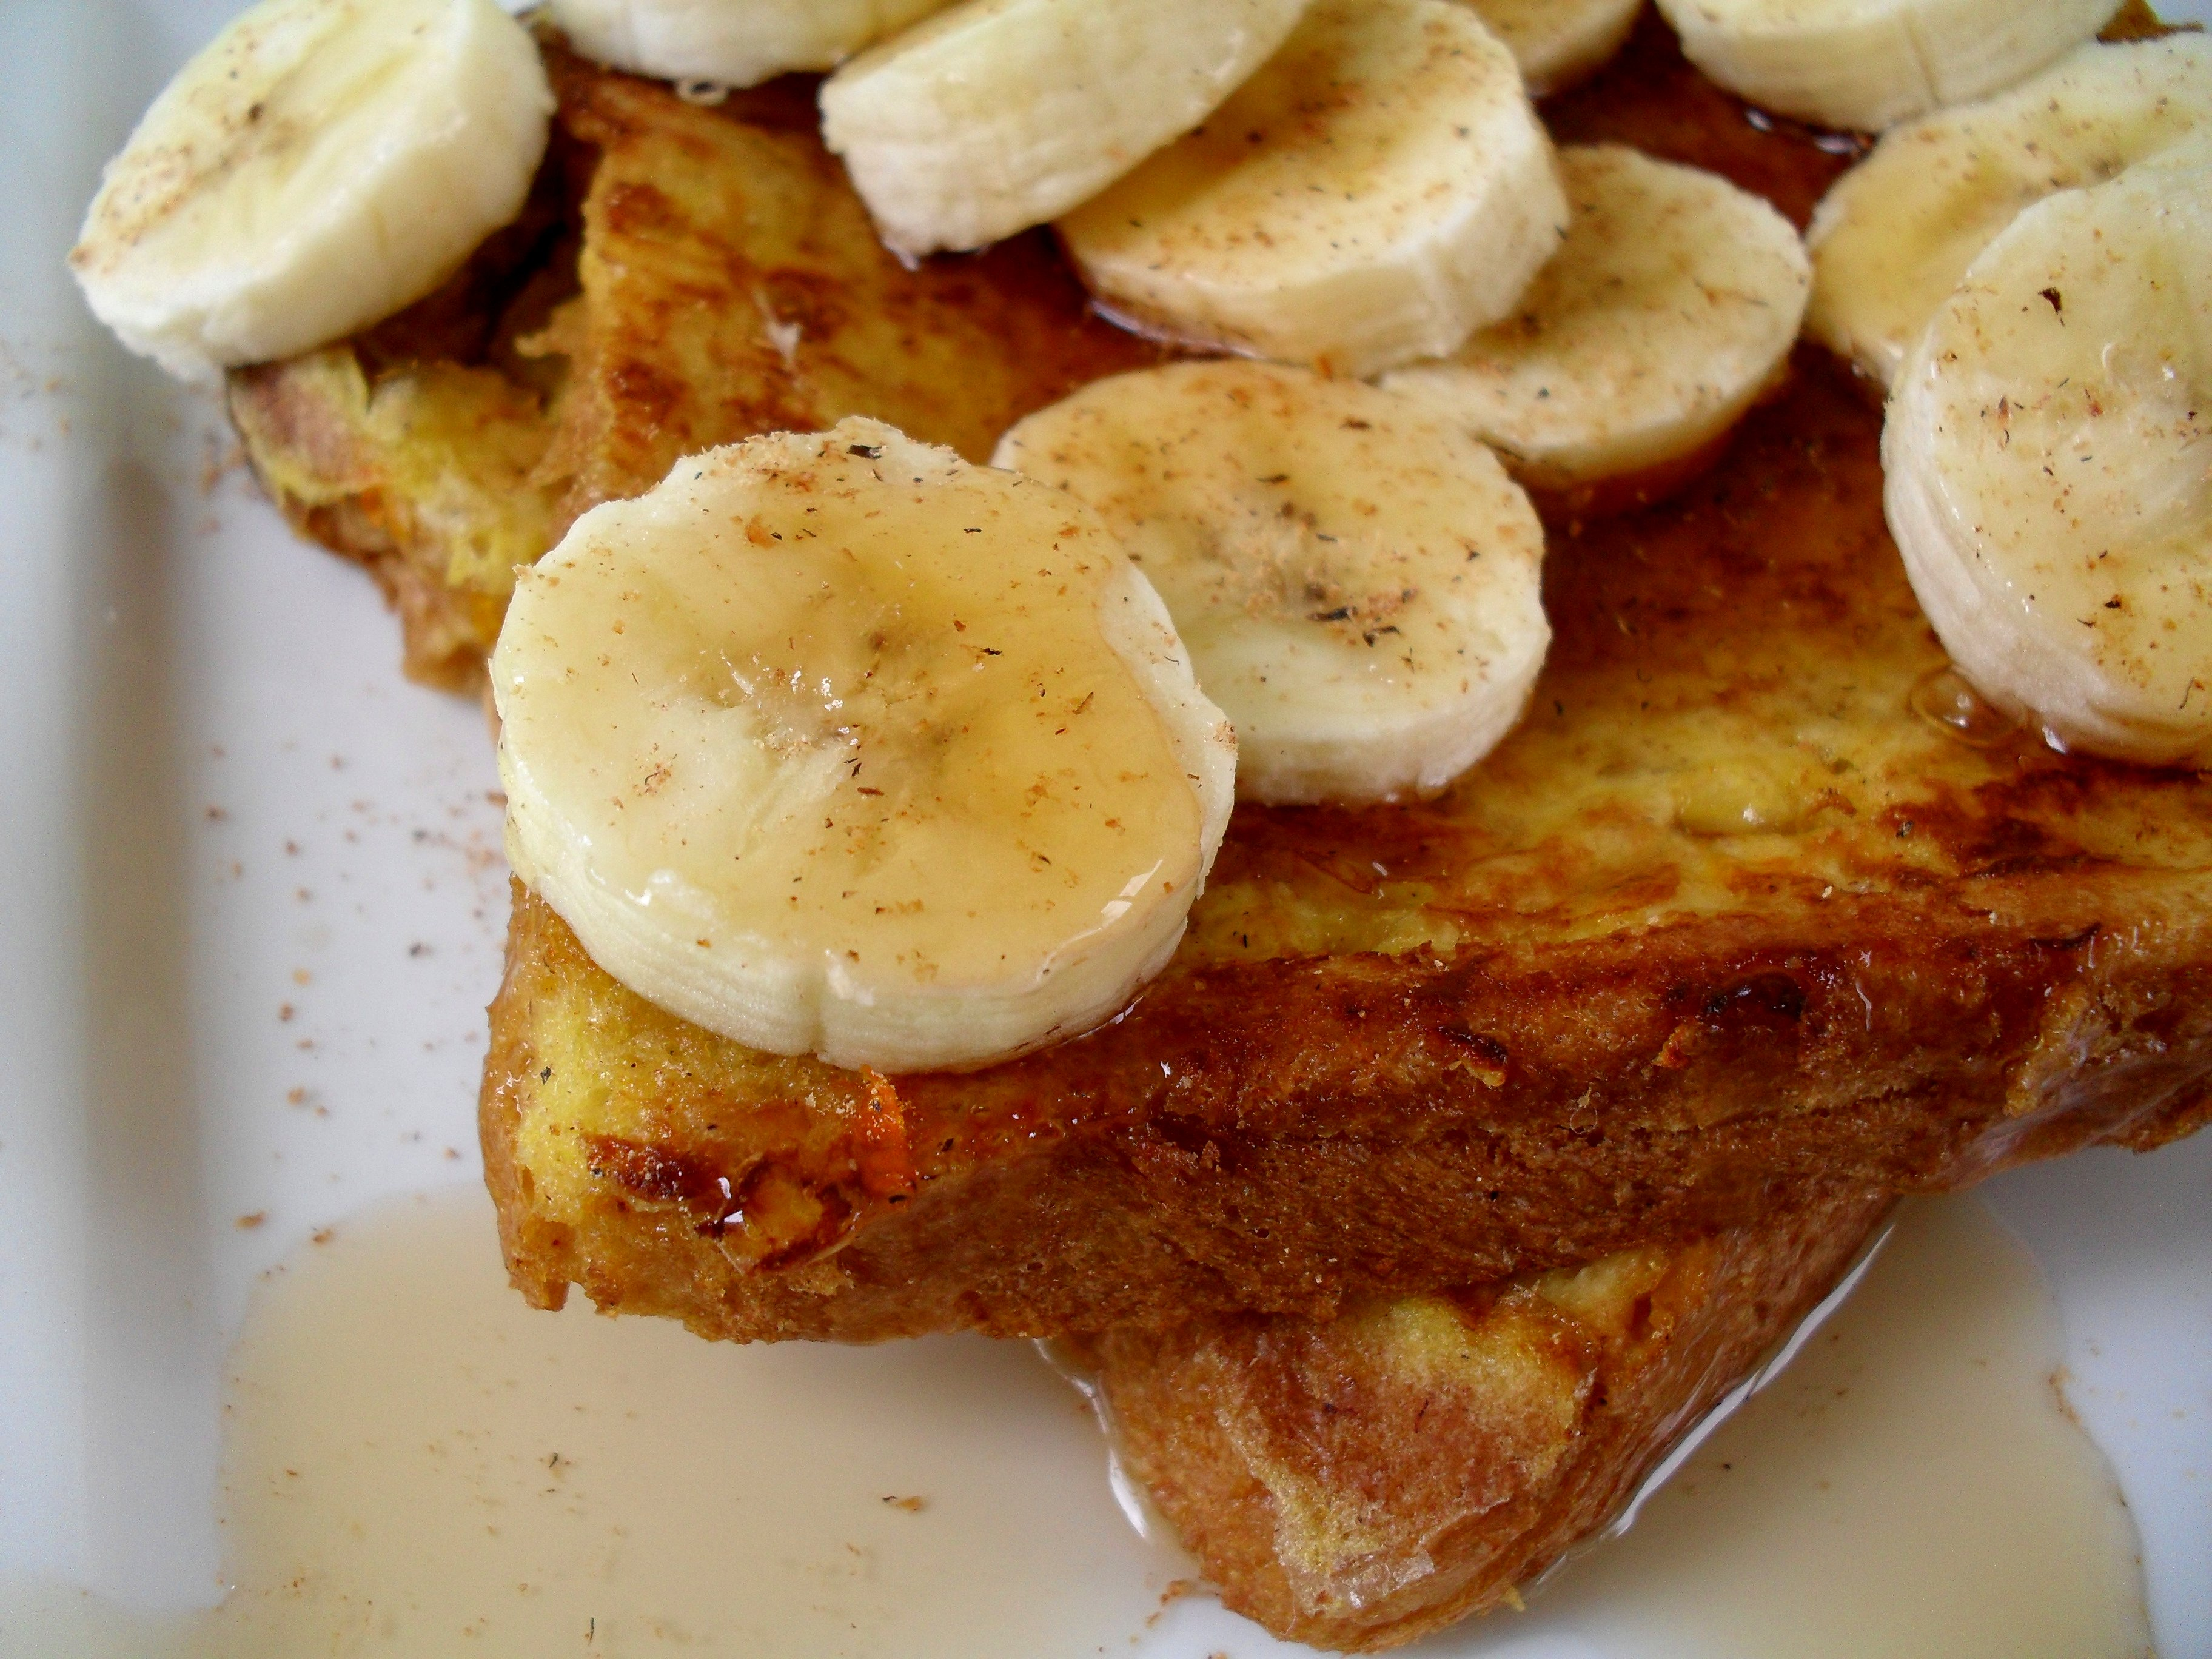 French Toast Banana Tcfle Ps2: If I Have Some Left Over Fruit That I Can  Cook Down To Make A Nice Yummy Fruitpote, Spice It Up With Cinnamon,